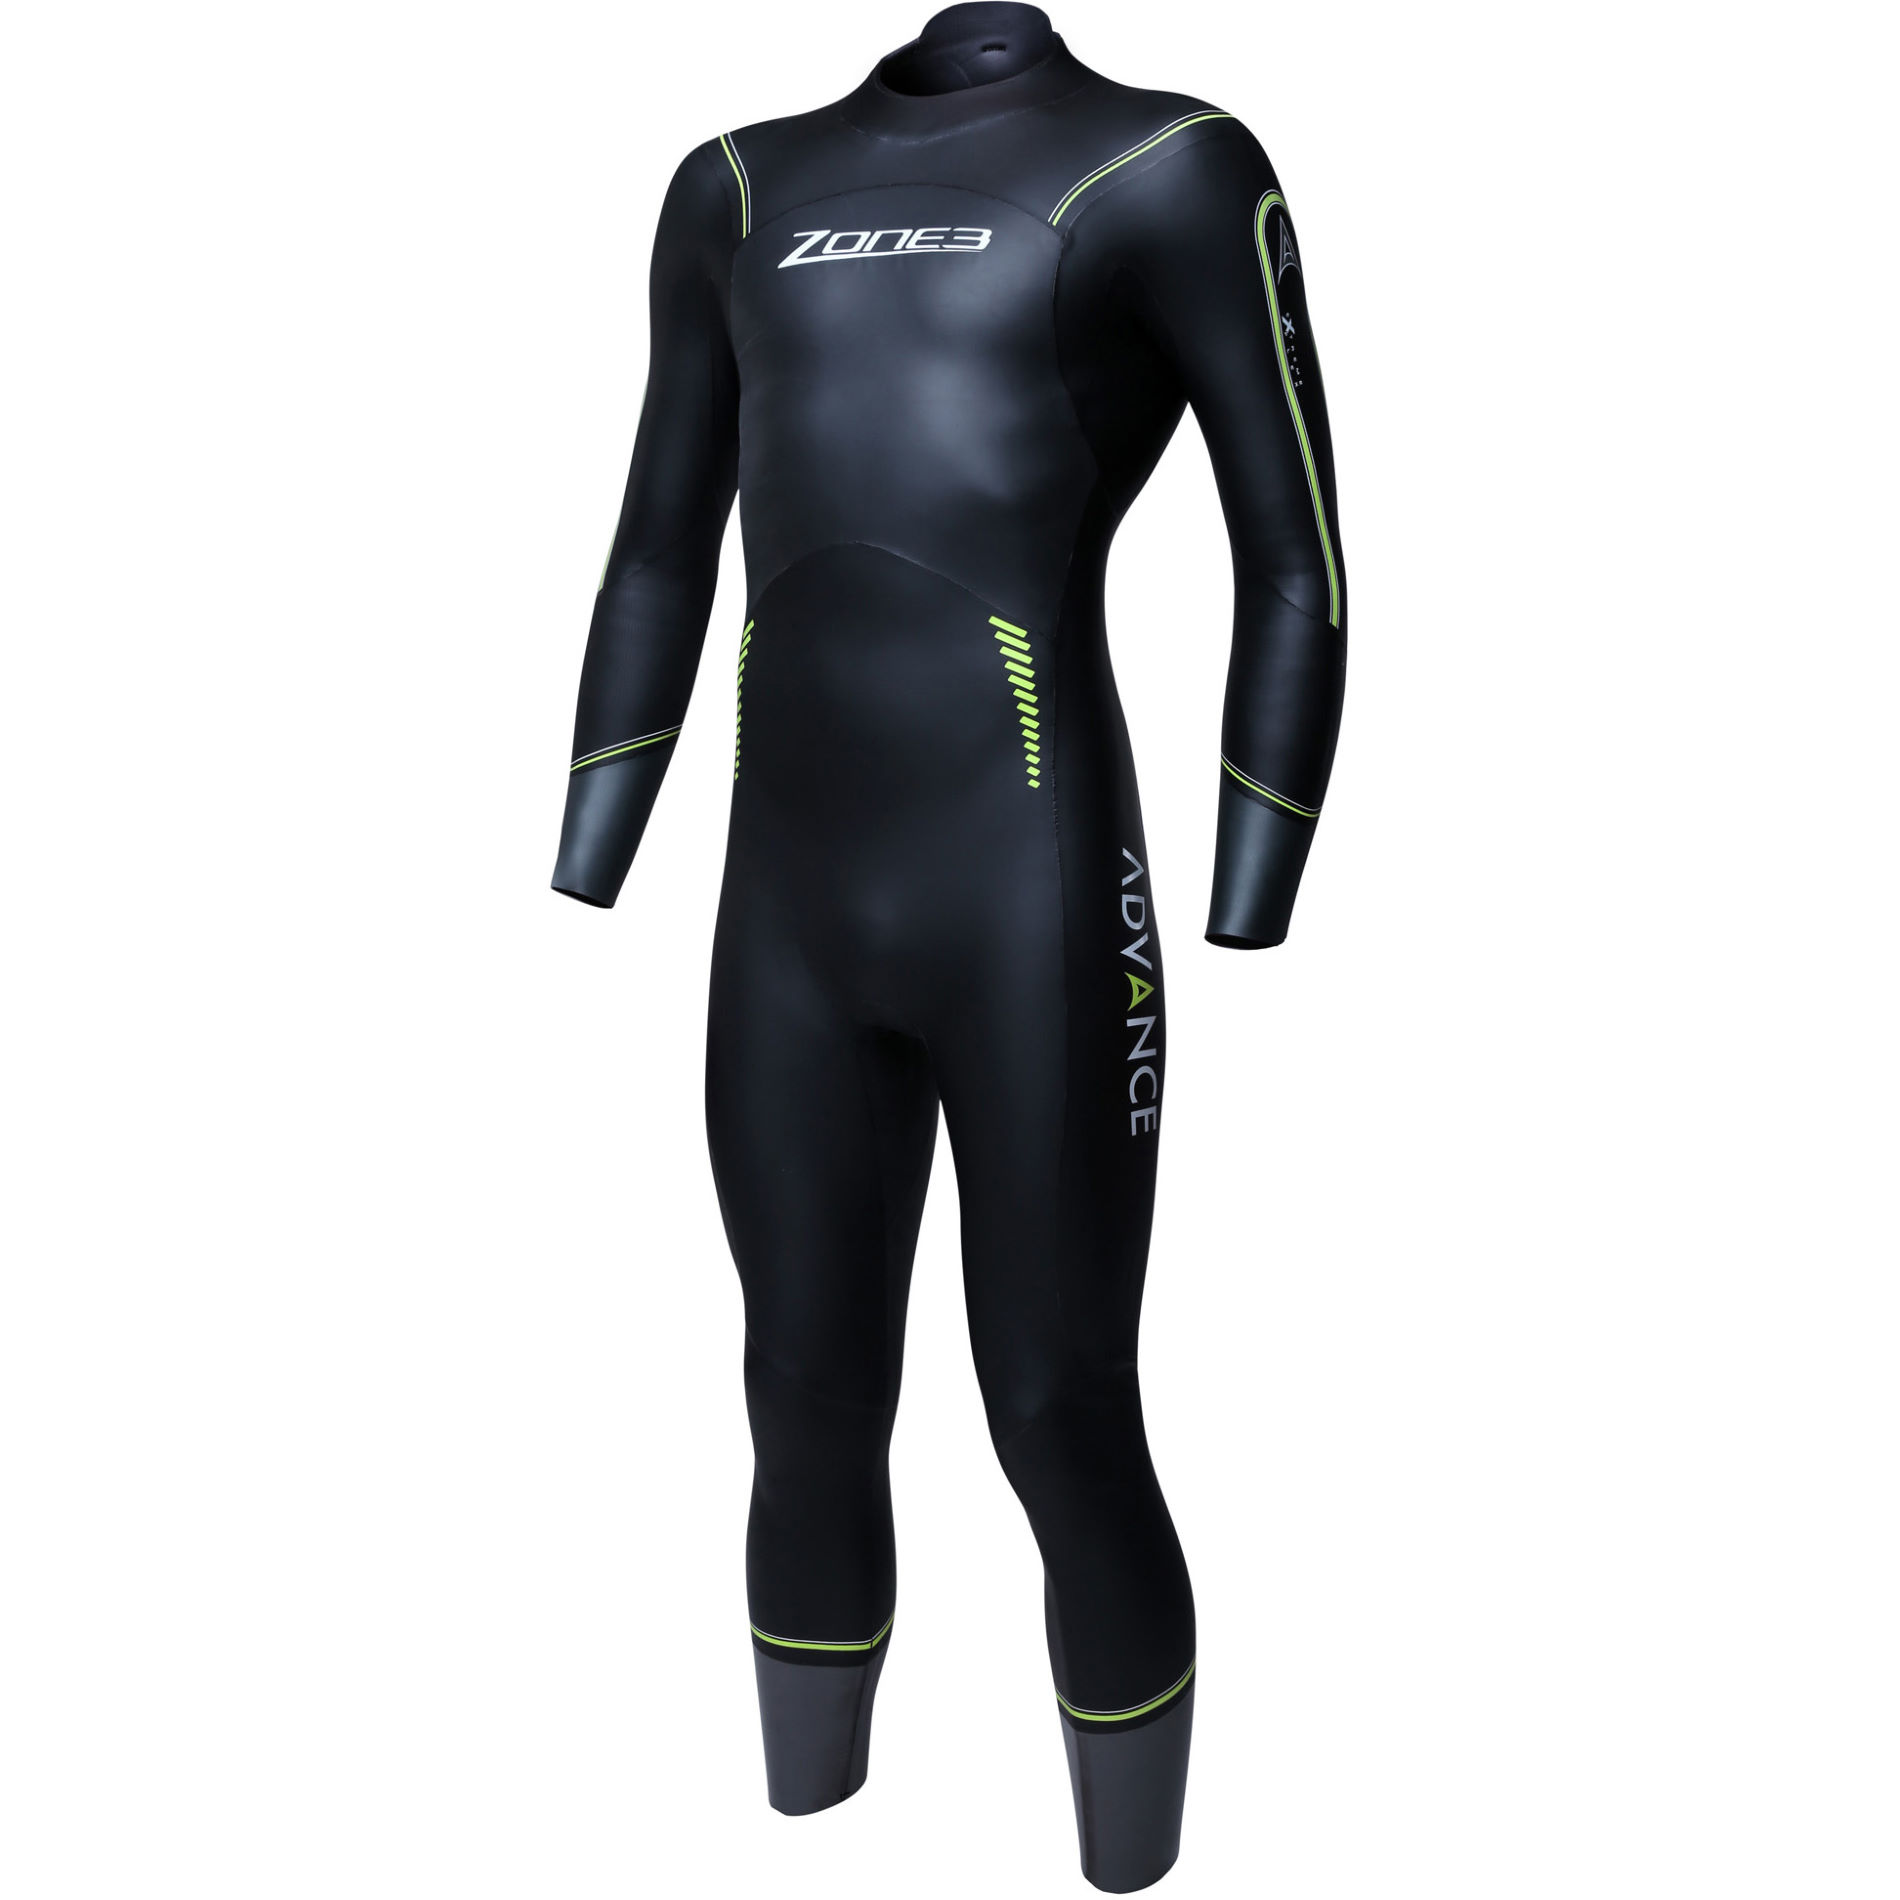 Wiggle | Zone3 Advance Wetsuit | Wetsuits